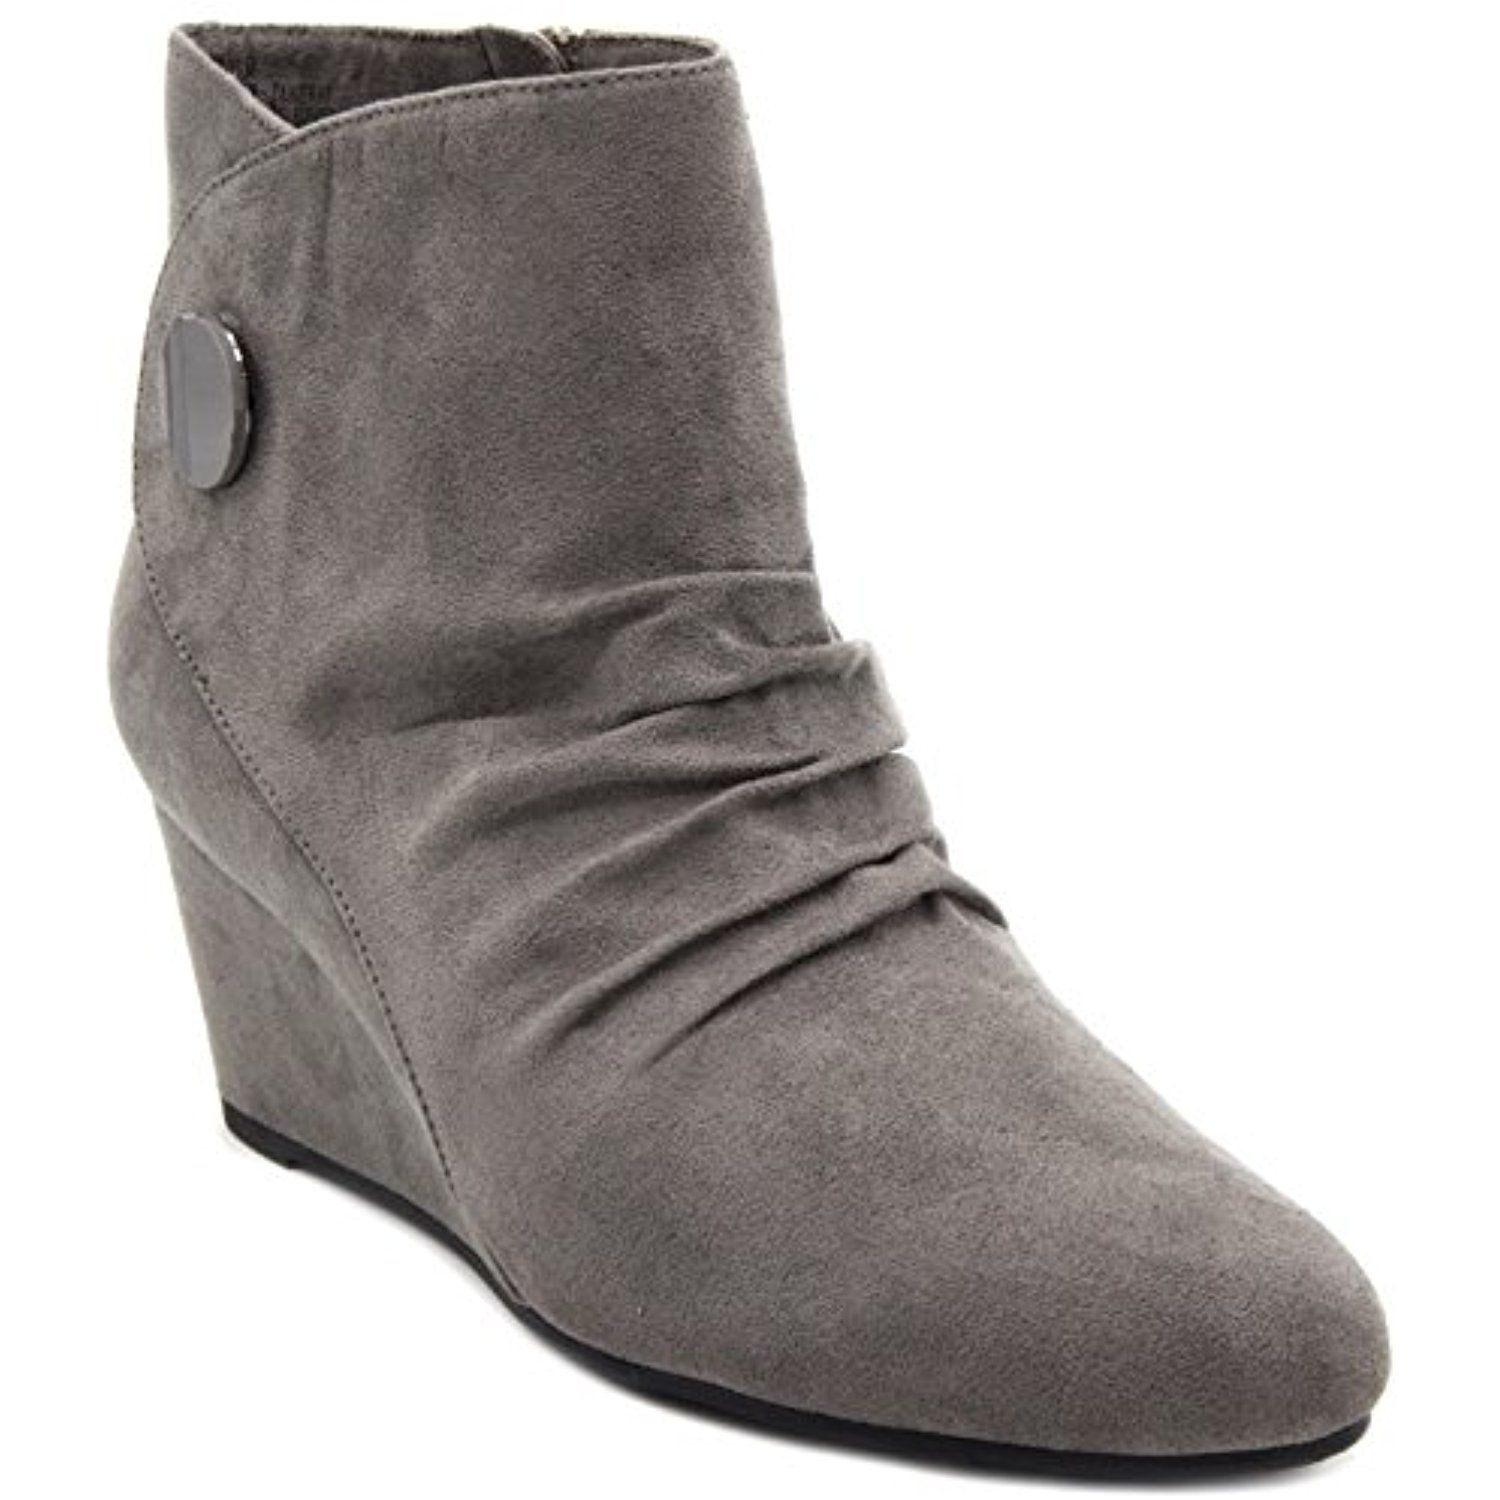 Womens Janeway Wedged Ankle Booties